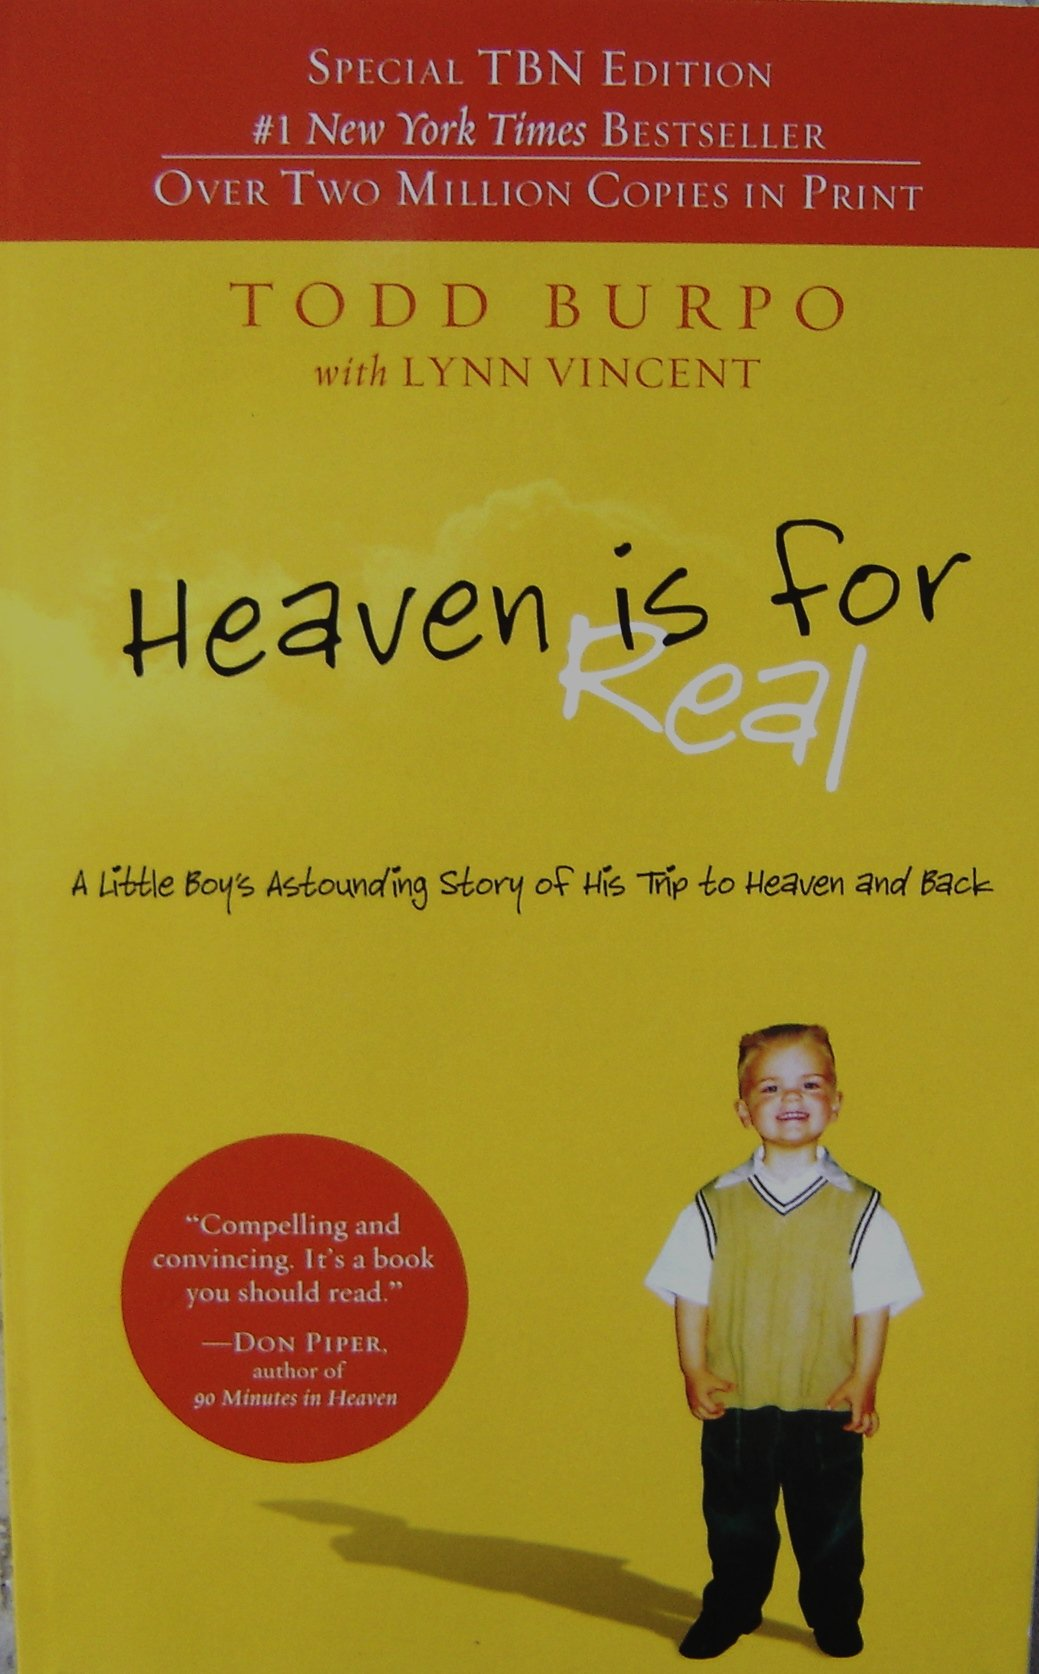 Heaven Is for Real (Special TBN Edition) Paperback (A Little Boy's Astounding Story of His Trip to Heaven and Back) PDF